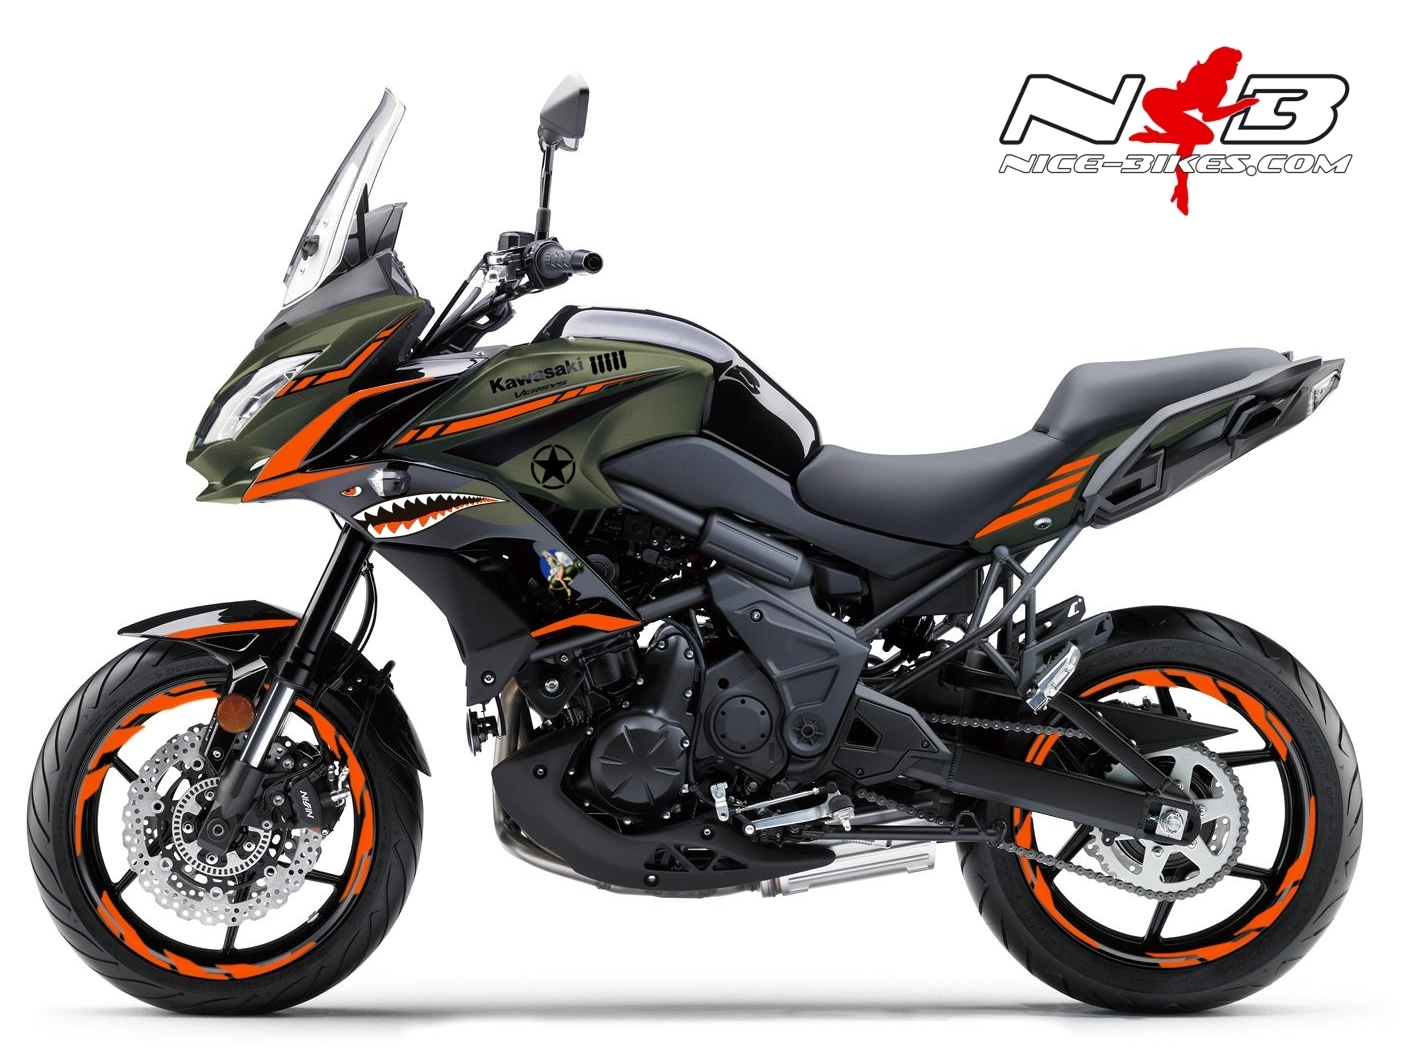 Foliendesign Kawasaki Versys 650 Bj. 2020 Nose Art